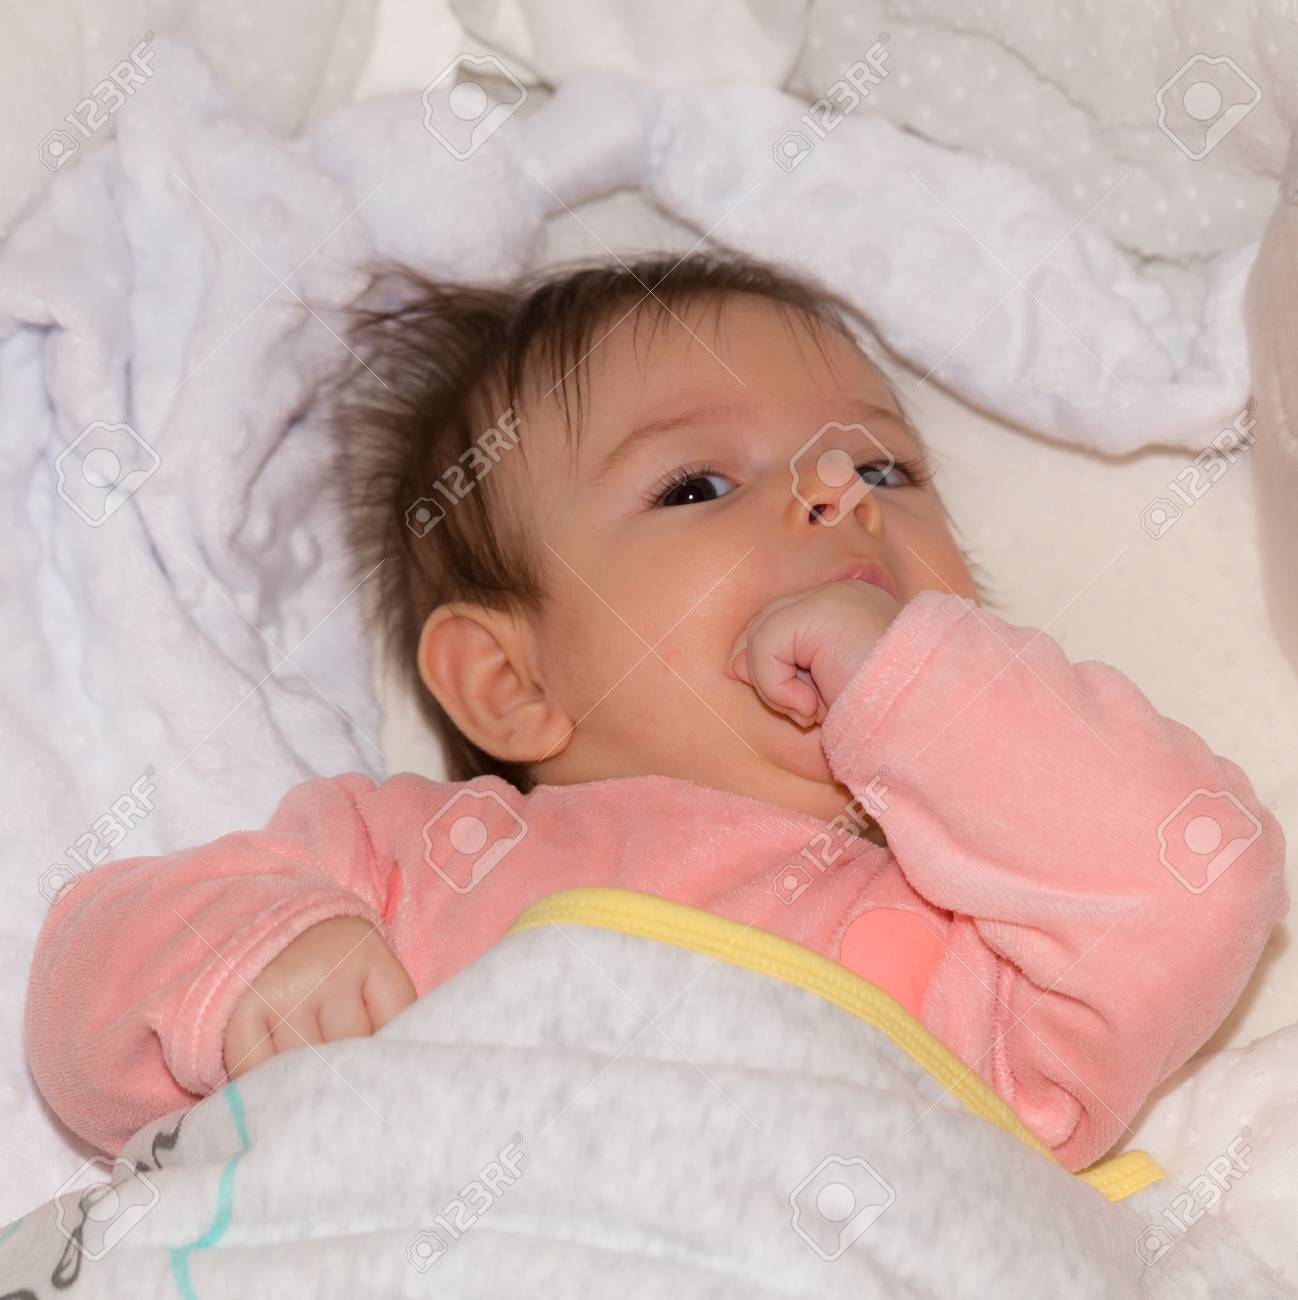 Sleepy Cute Baby Girl In The Crib Ready For Sleeping Stock Photo Picture And Royalty Free Image Image 93620077